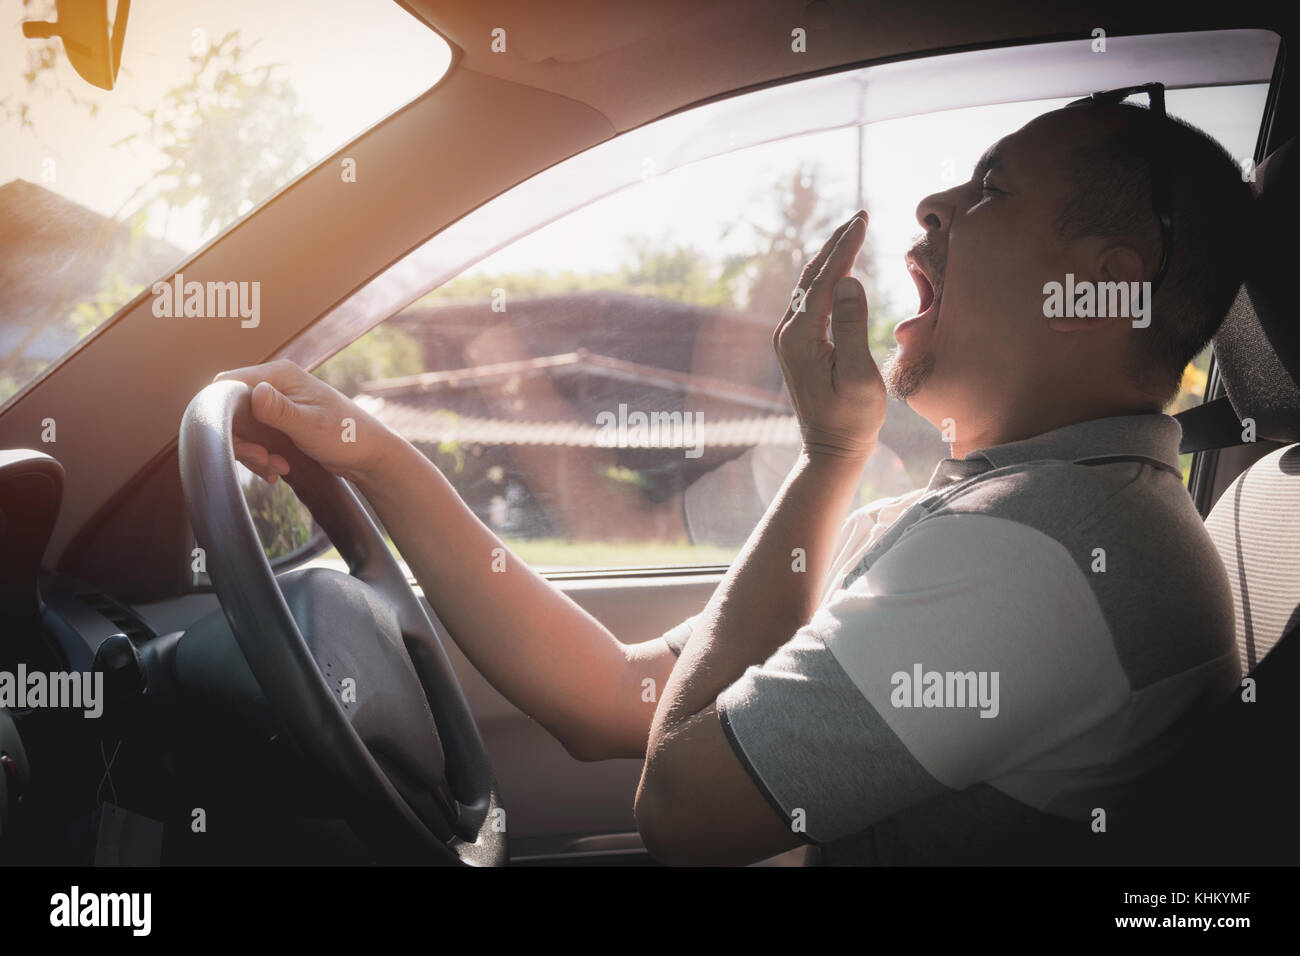 Sleepy yawning man driving car in traffic after long hour drive. Man falling asleep in car. - Stock Image